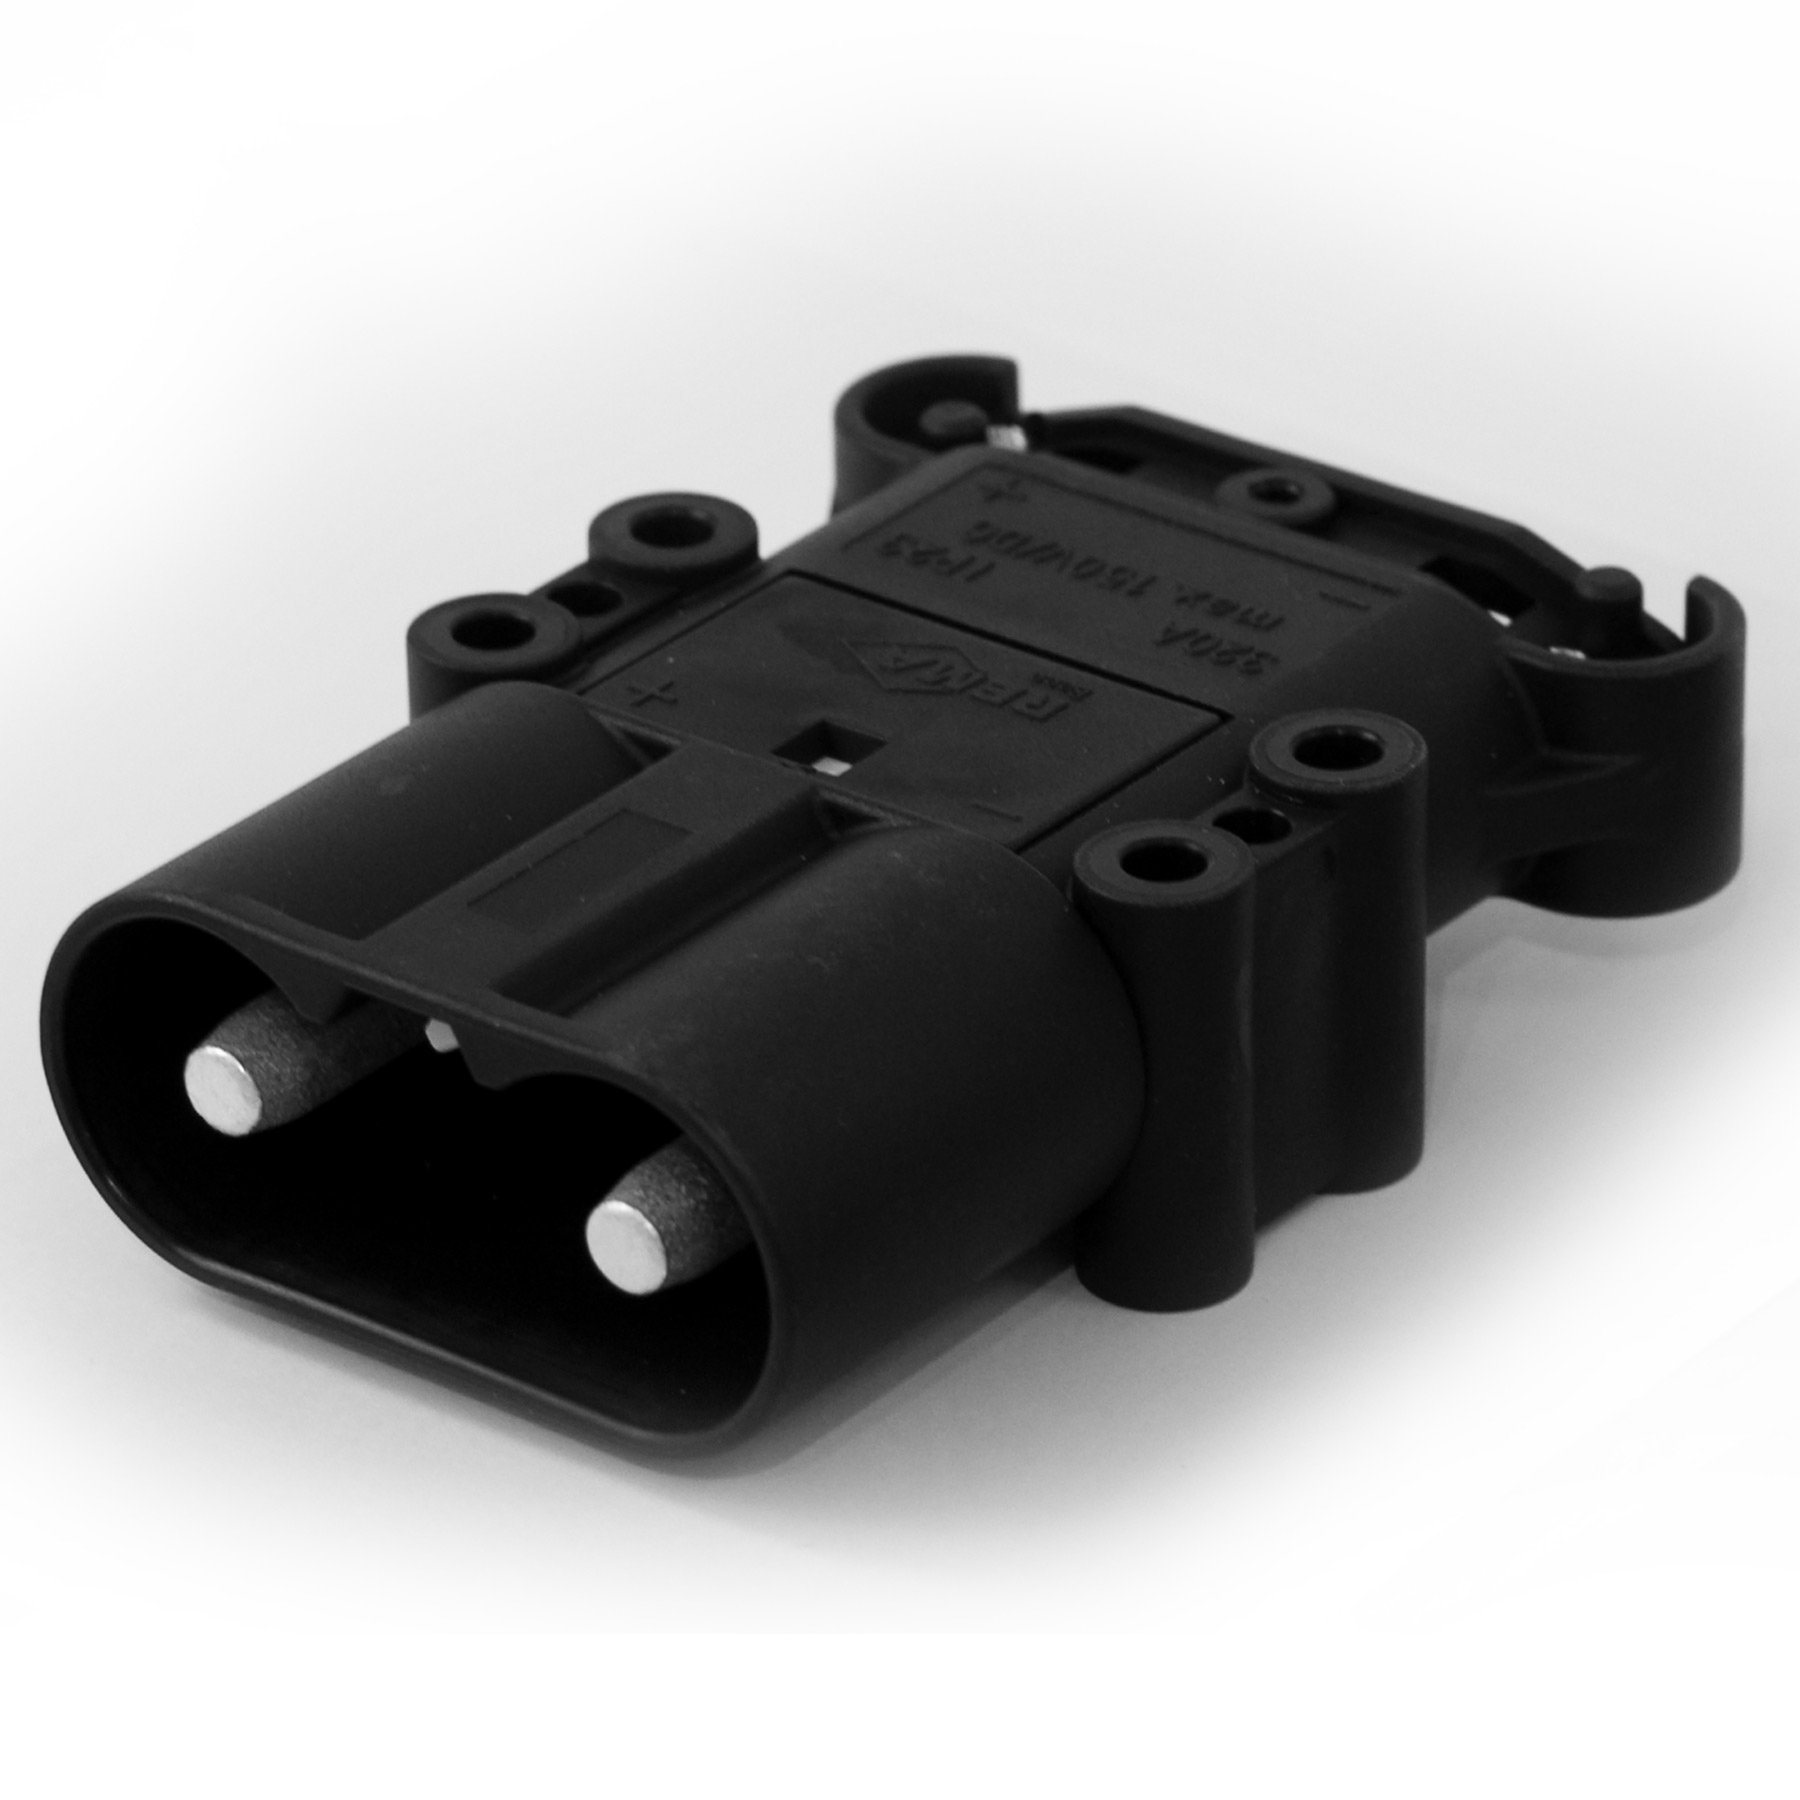 REMA 320A charger & vehicle connector with 50mm2 main contacts, Max. 150V/320A, Sold by OEM Xpress by Rema (Image #1)